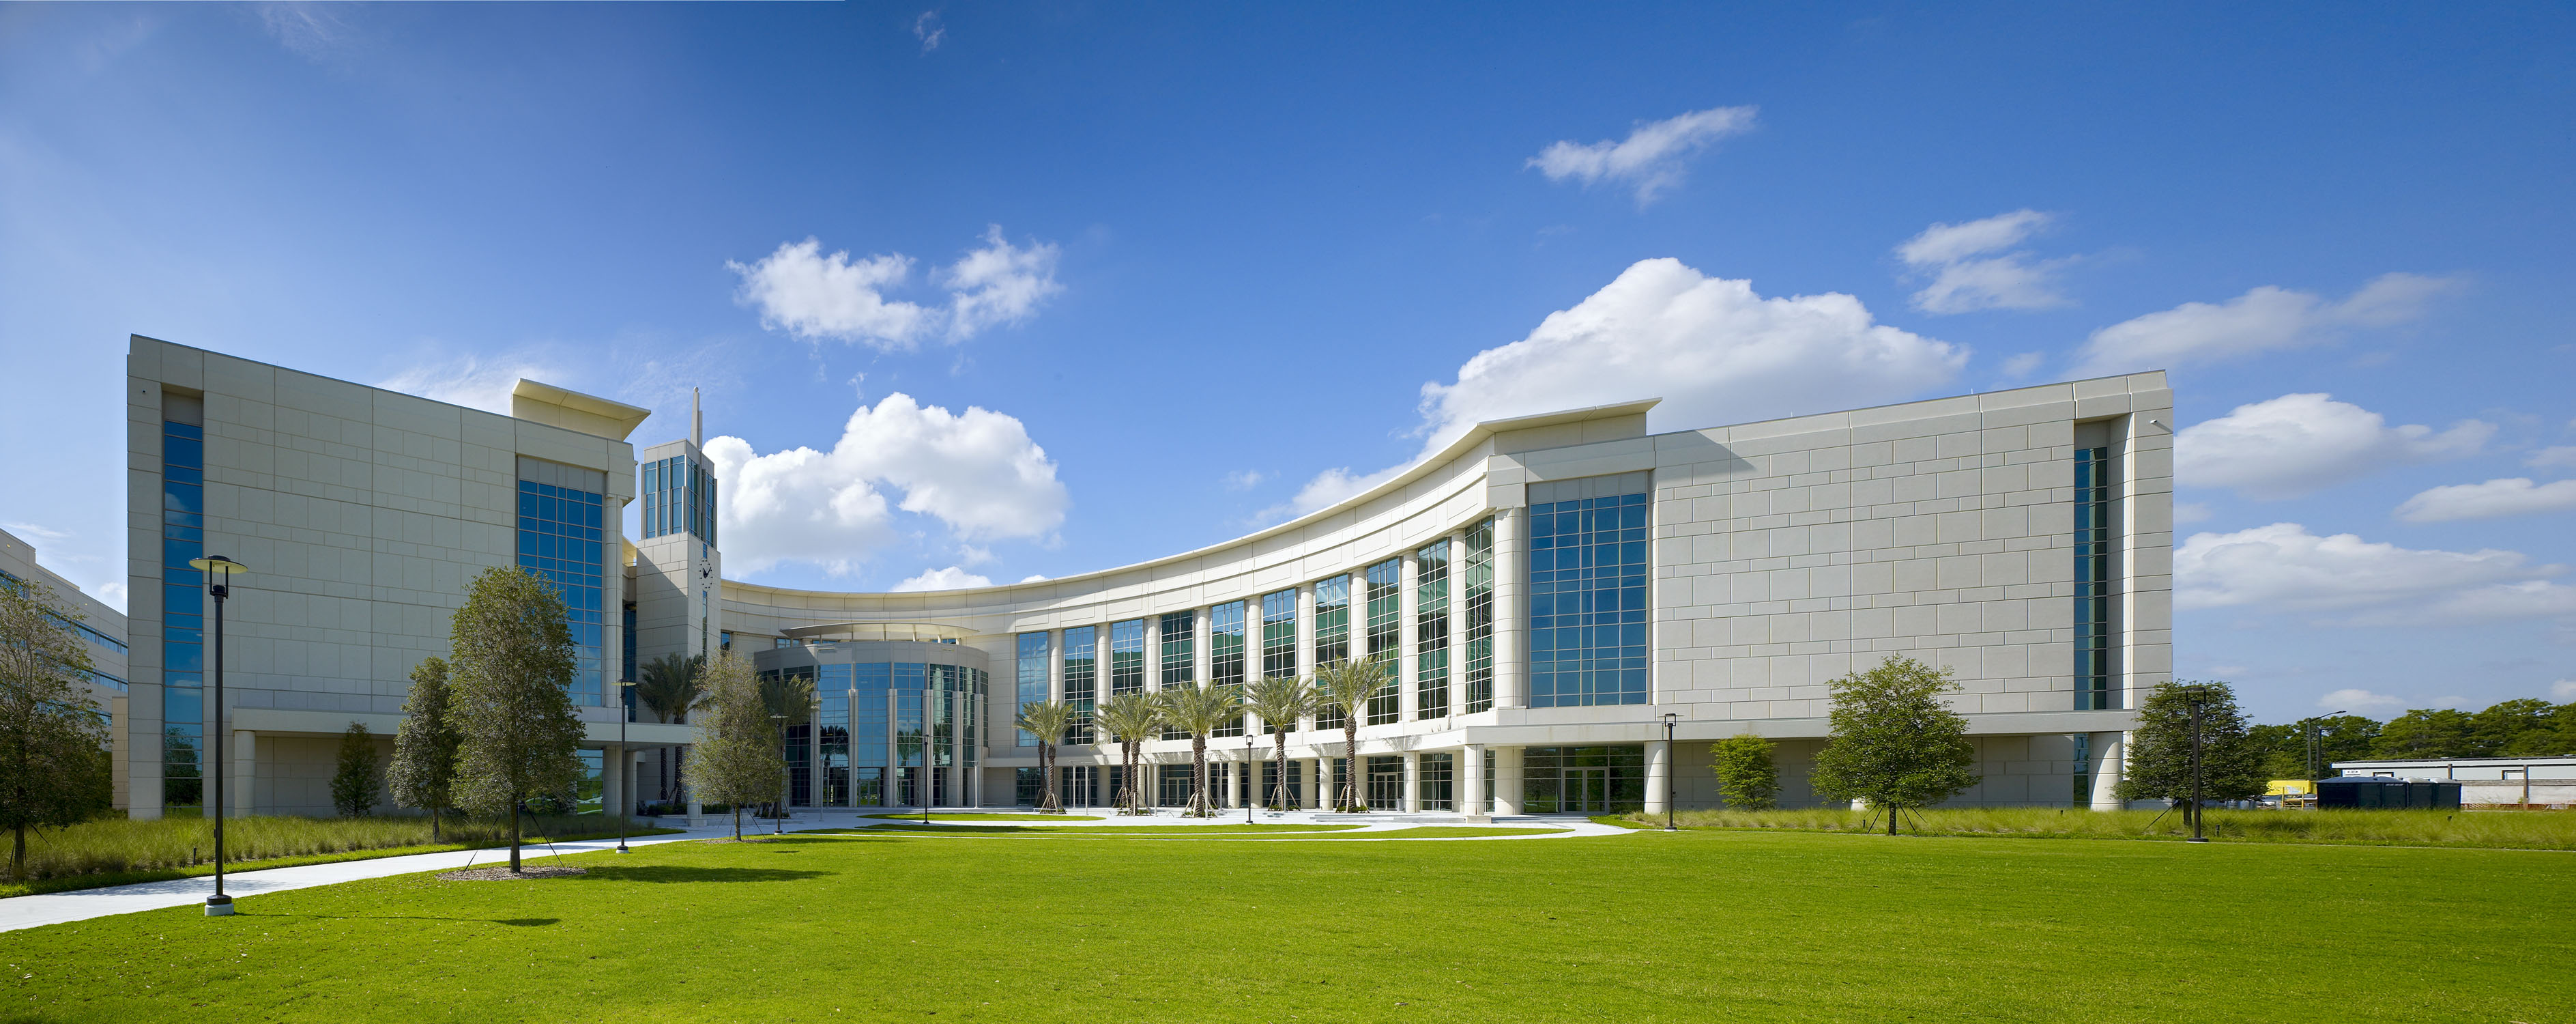 Bon University Of Central Florida Project Scope 171,000 SF